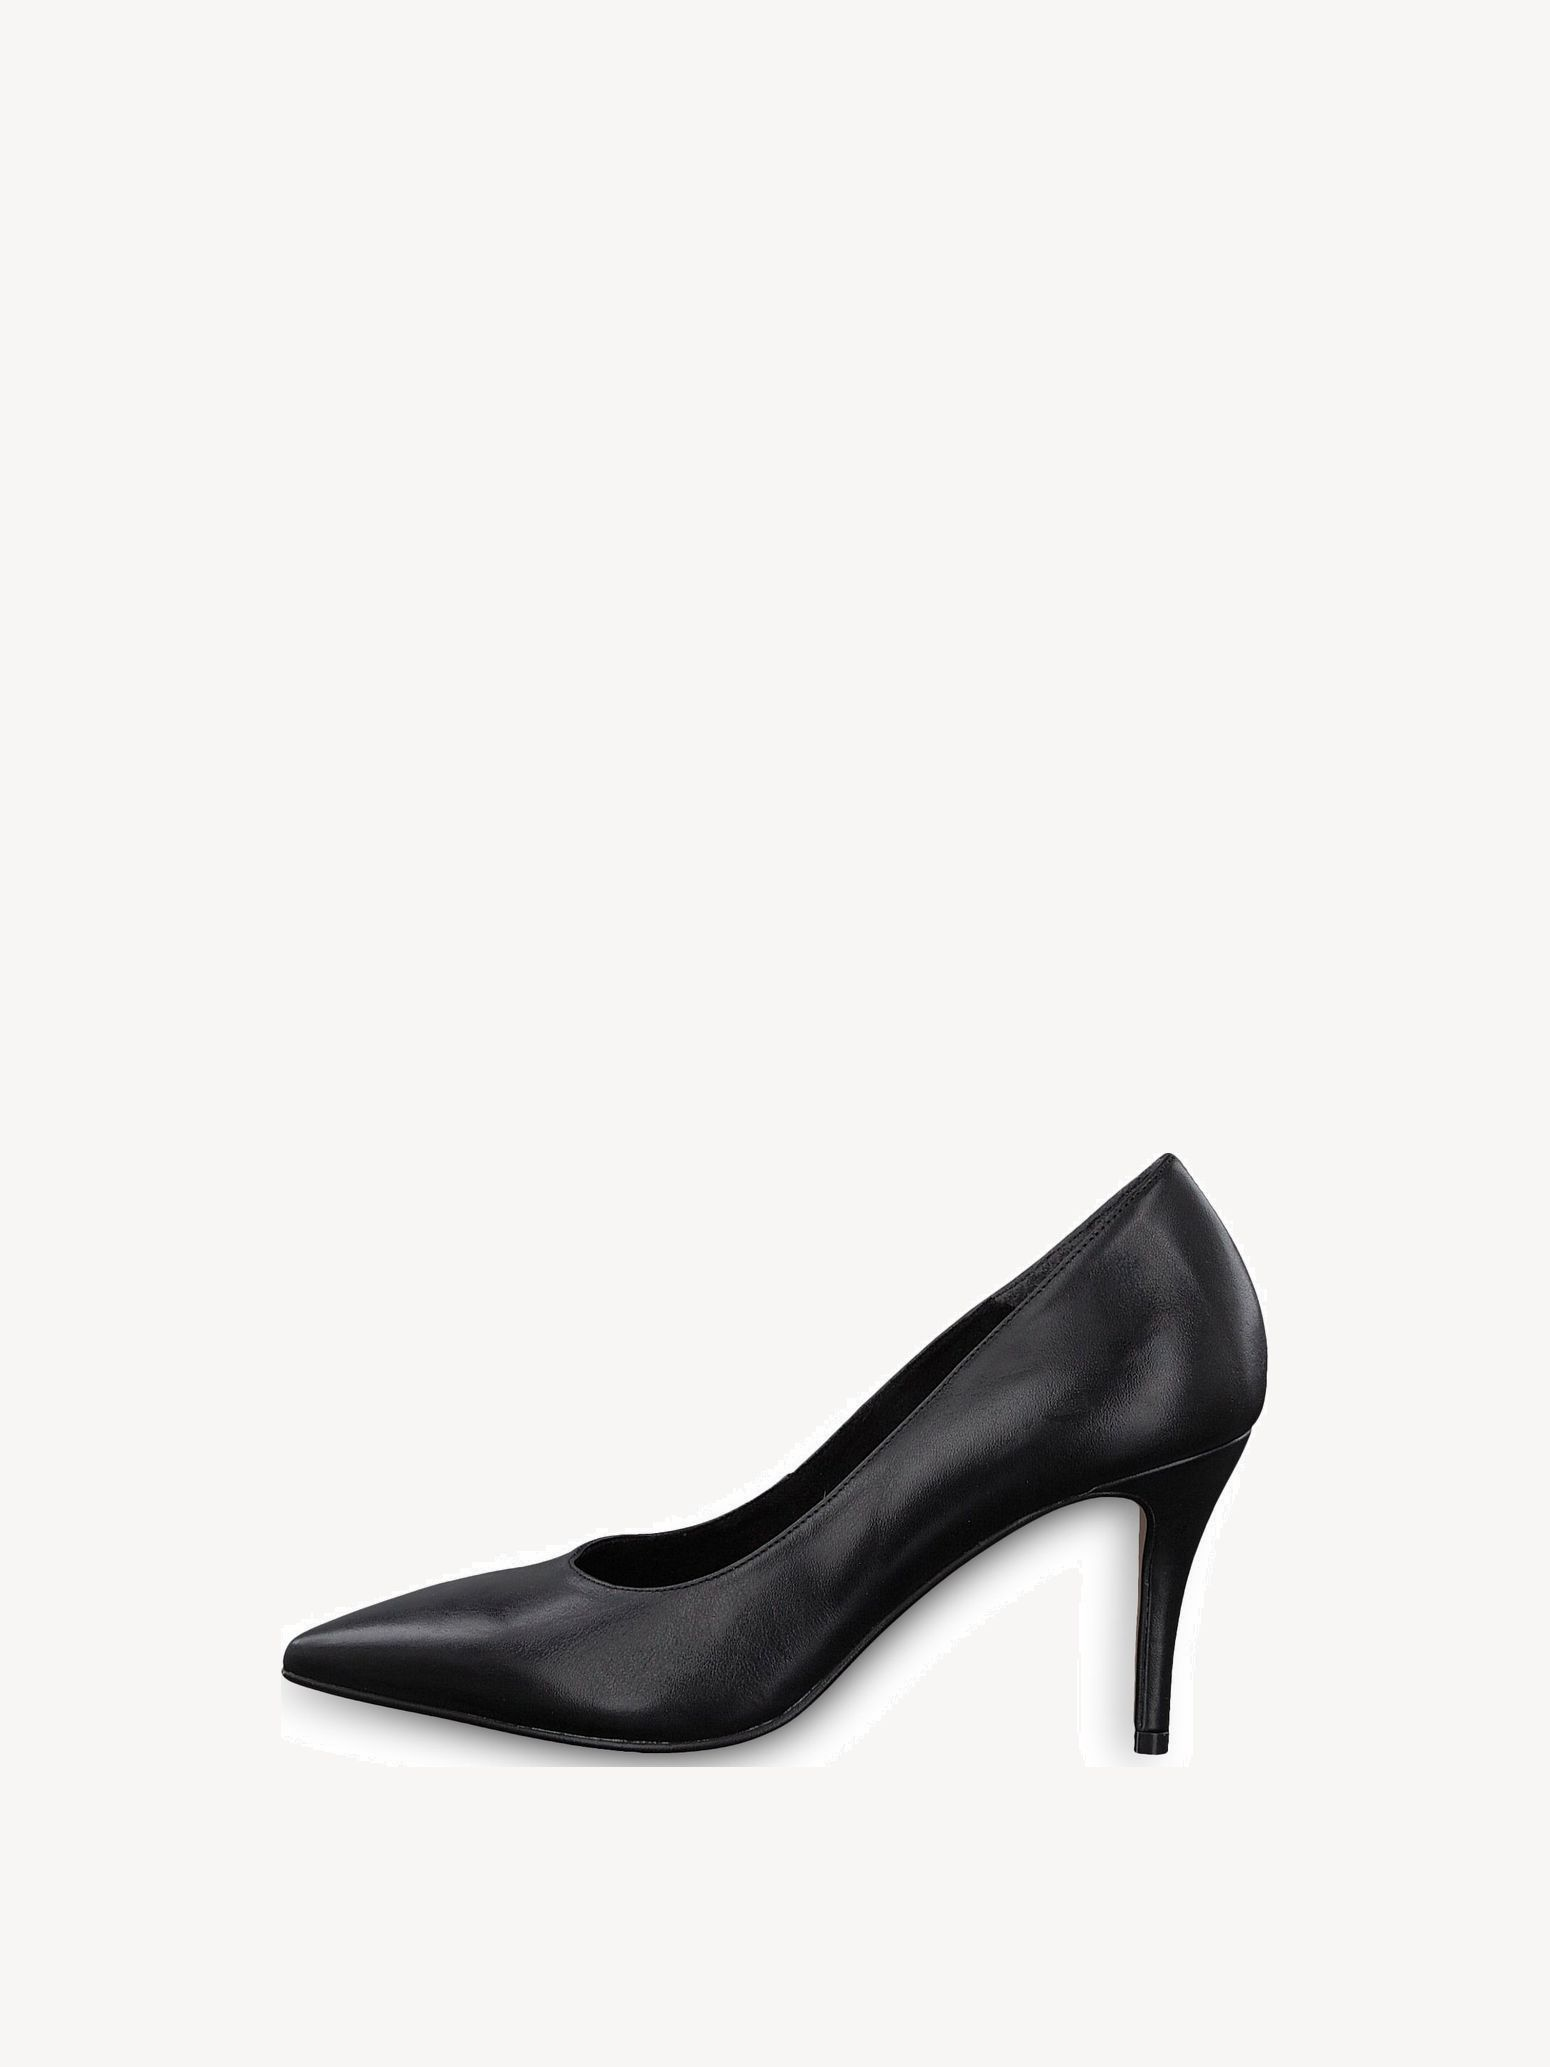 22460, Escarpins Femme, Noir (Black Leather), 39 EUTamaris